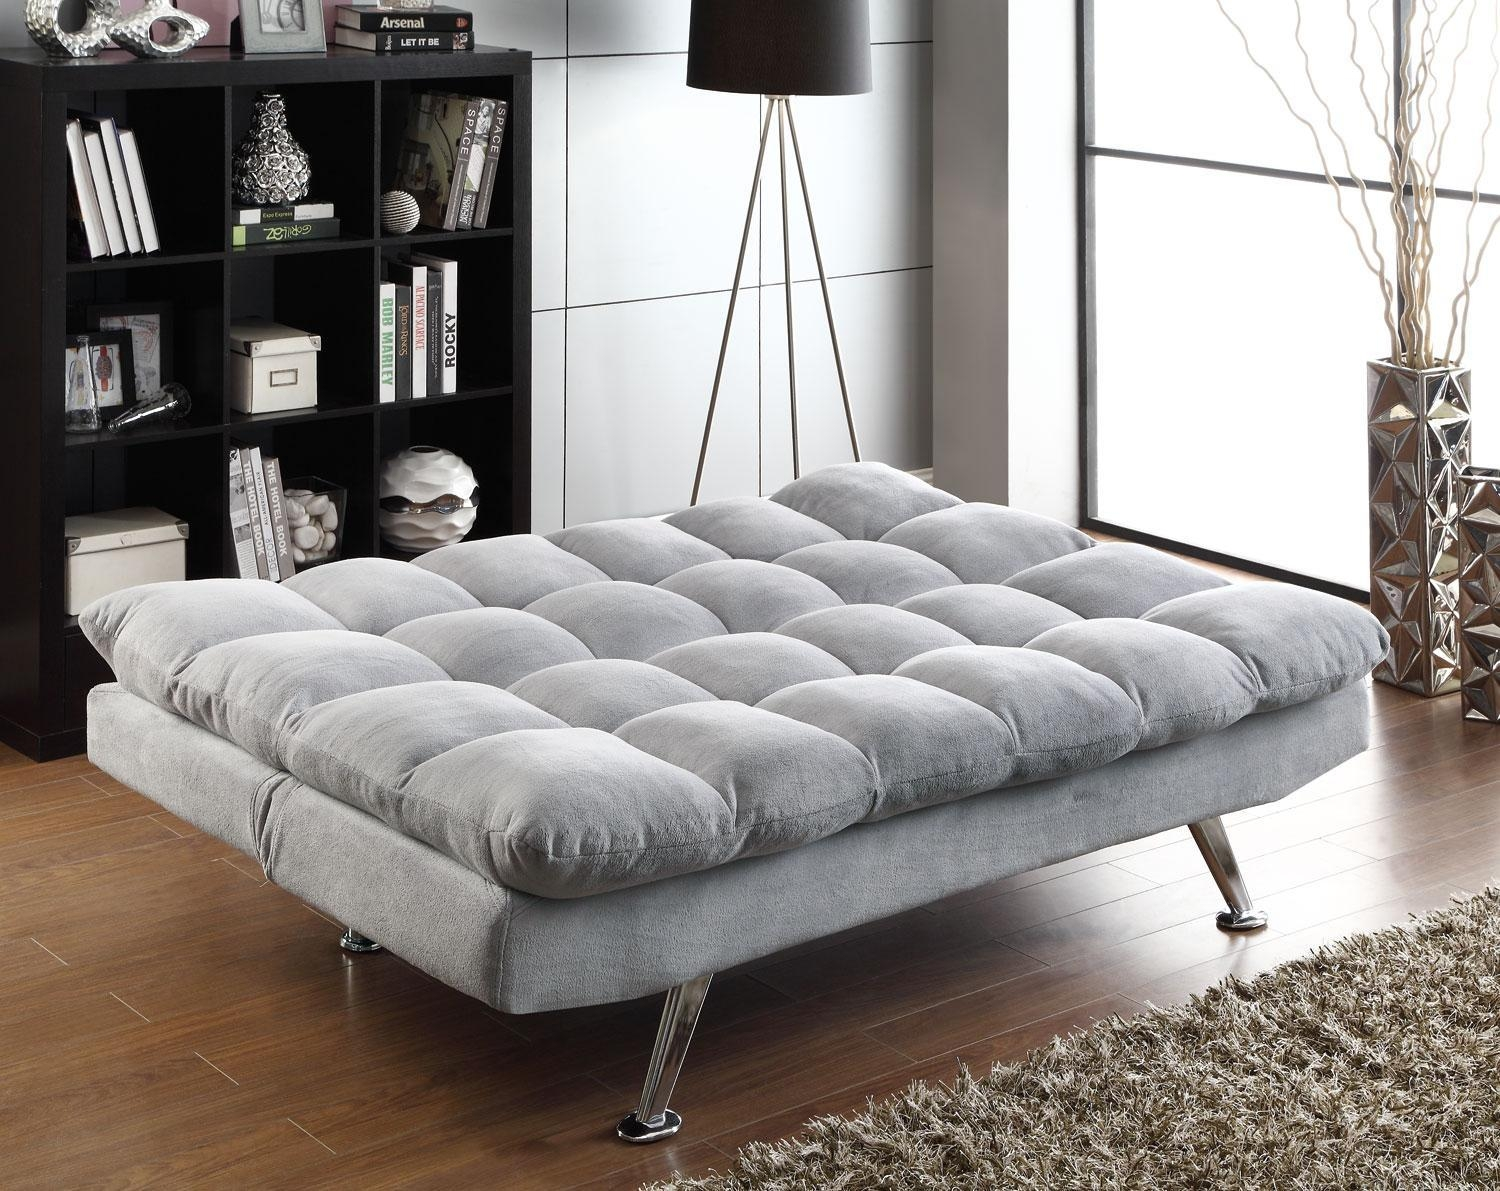 Futons Sofa Bed Sleeper Coaster Furniture 500775 Stores Sale For Coaster Futon Sofa Beds (View 20 of 20)